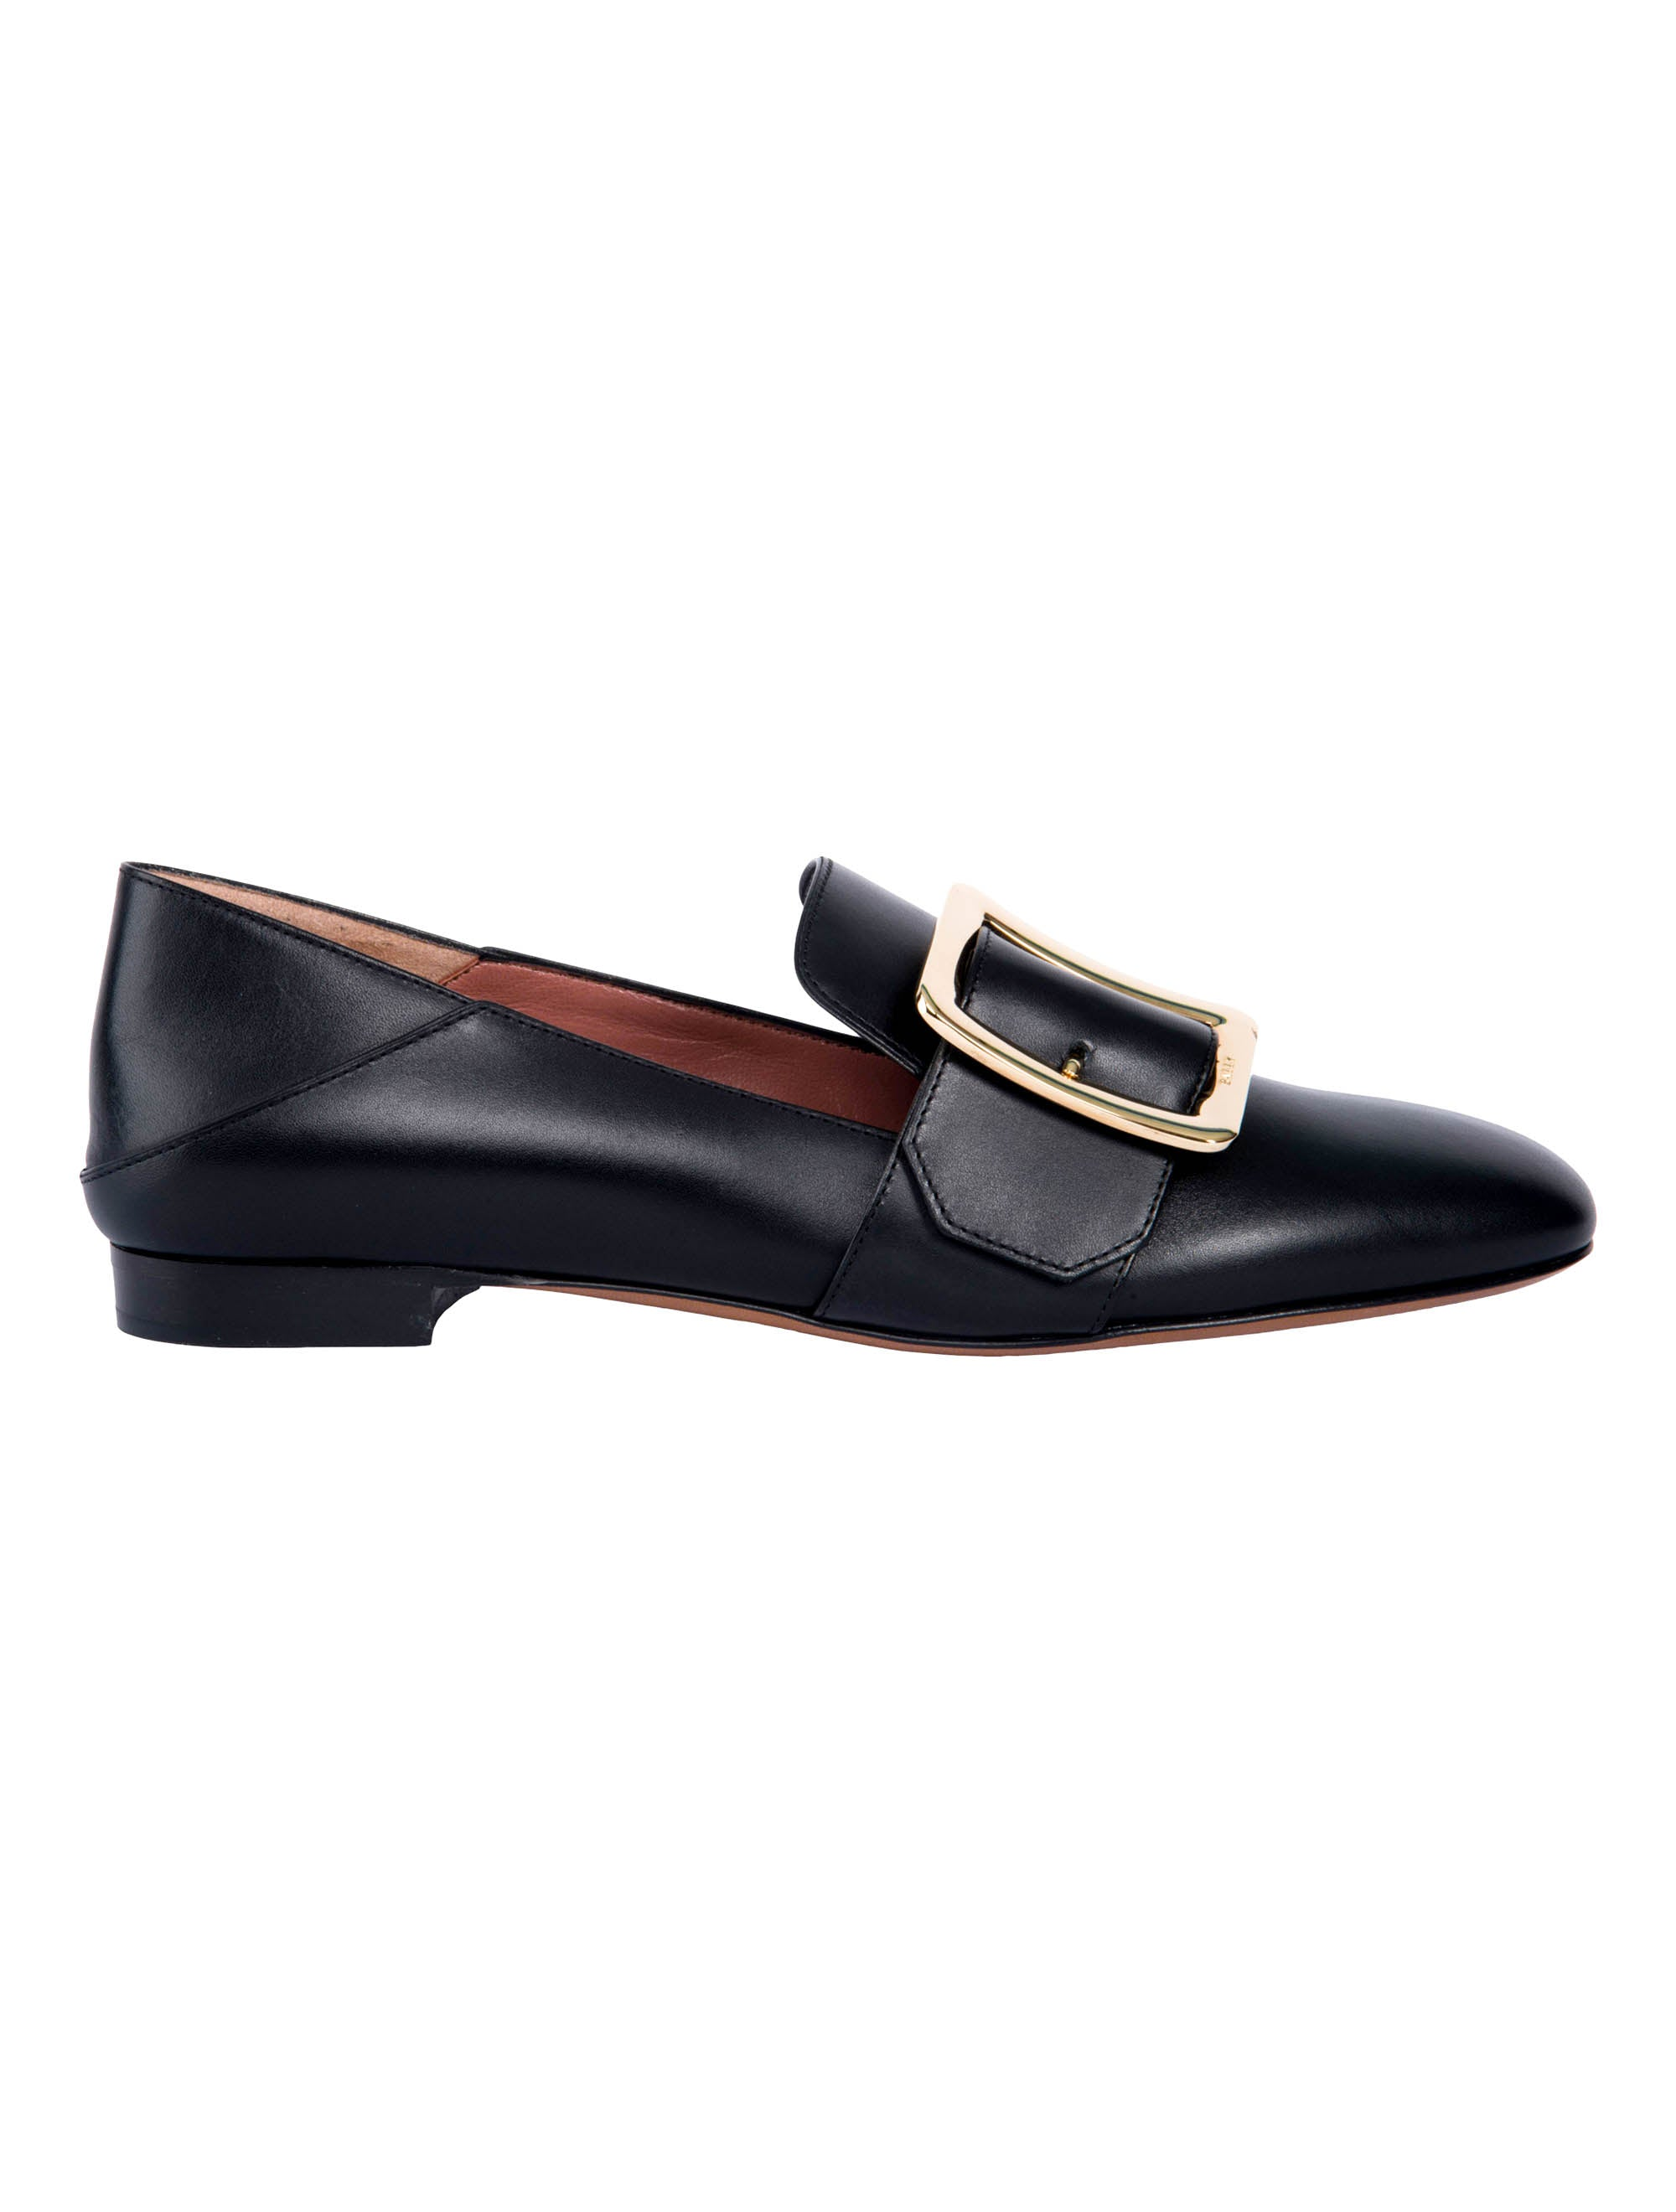 Bally Janelle Buckle Loafers, Black